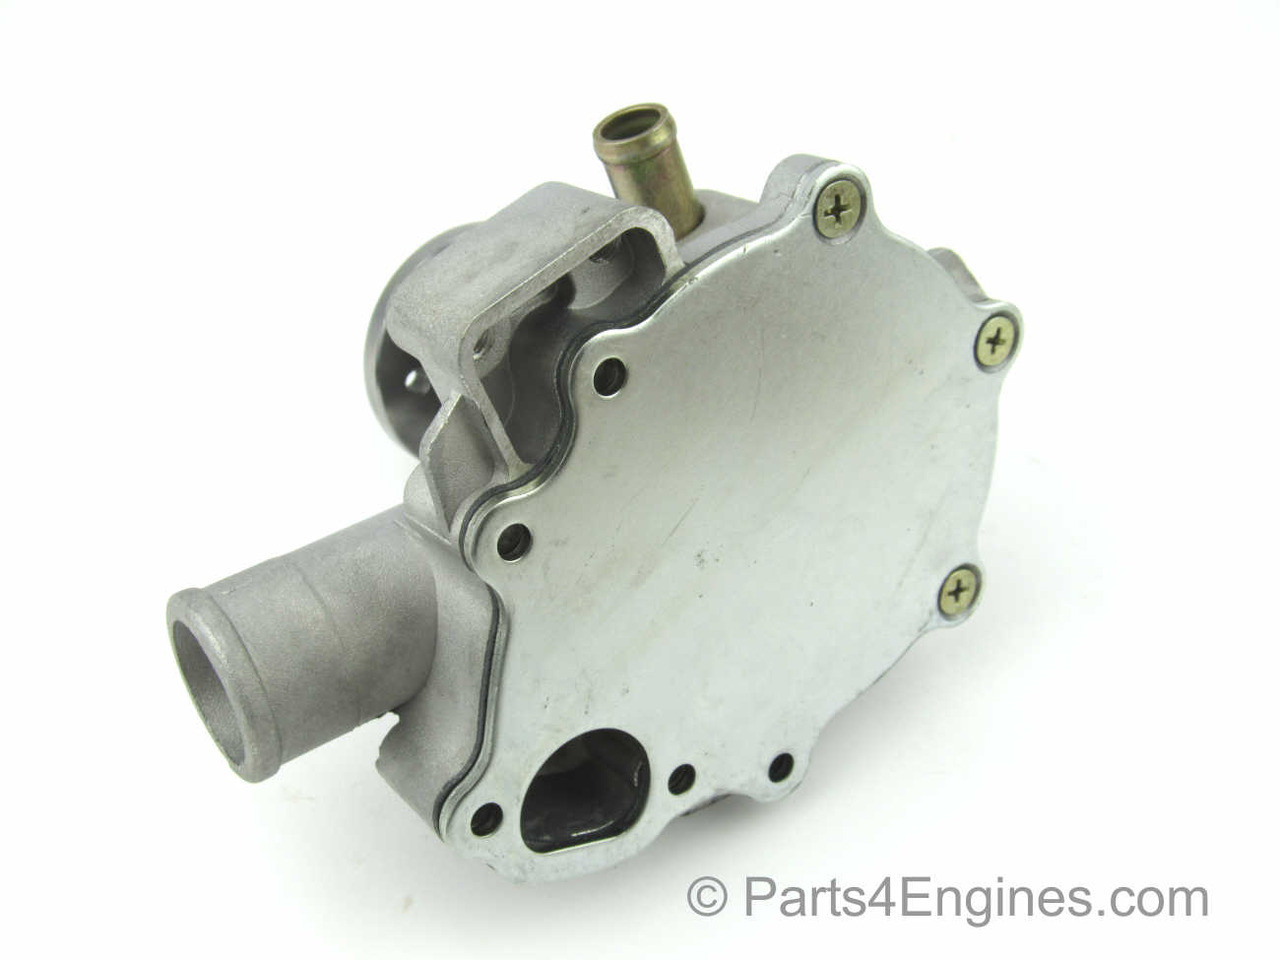 Perkins M35, MC42 KE, KF & KR engine codes (rear view) - parts4engines.com